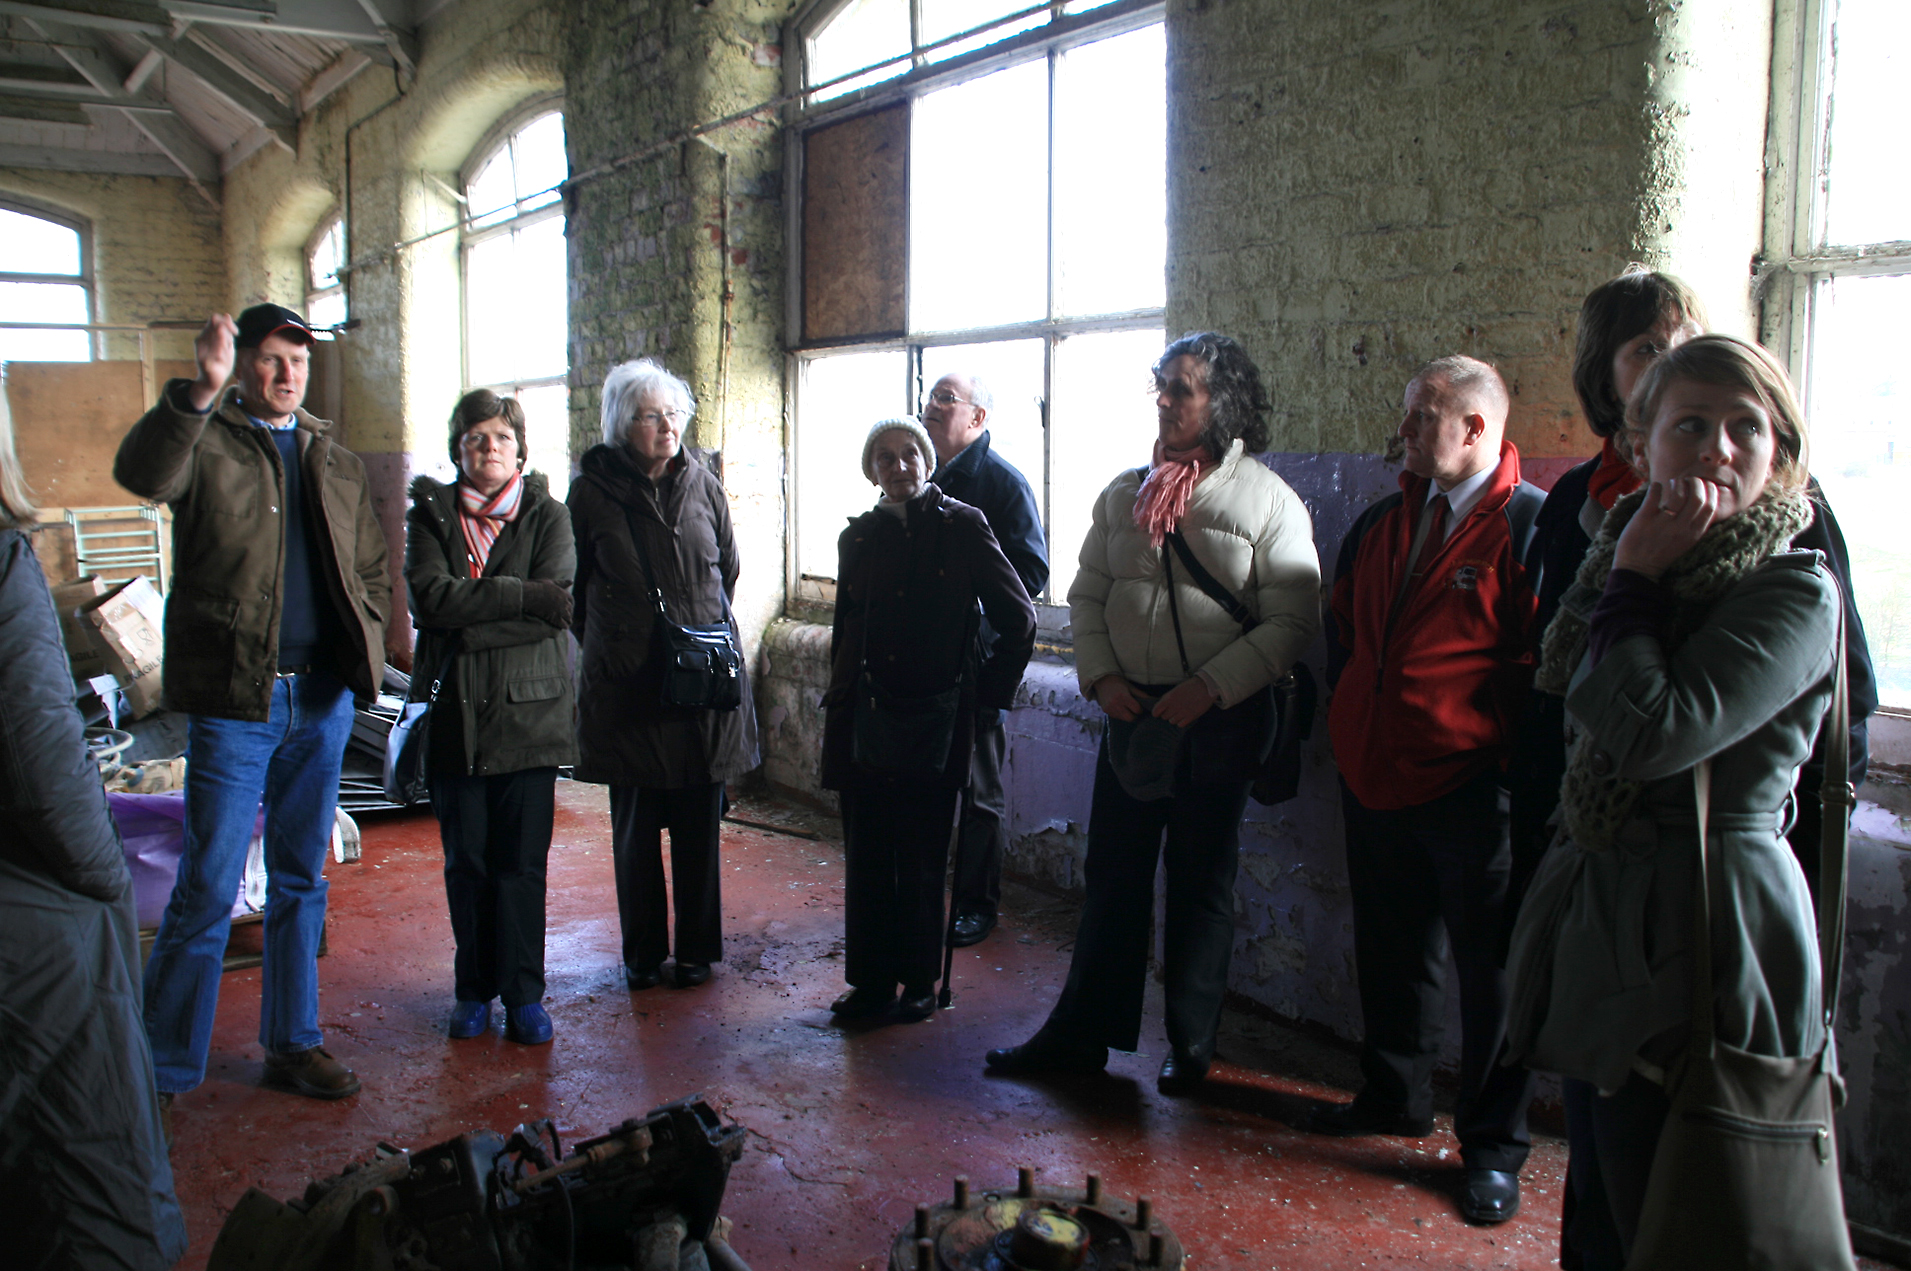 Residents undertaking a Placecheck of a historic mill complex.